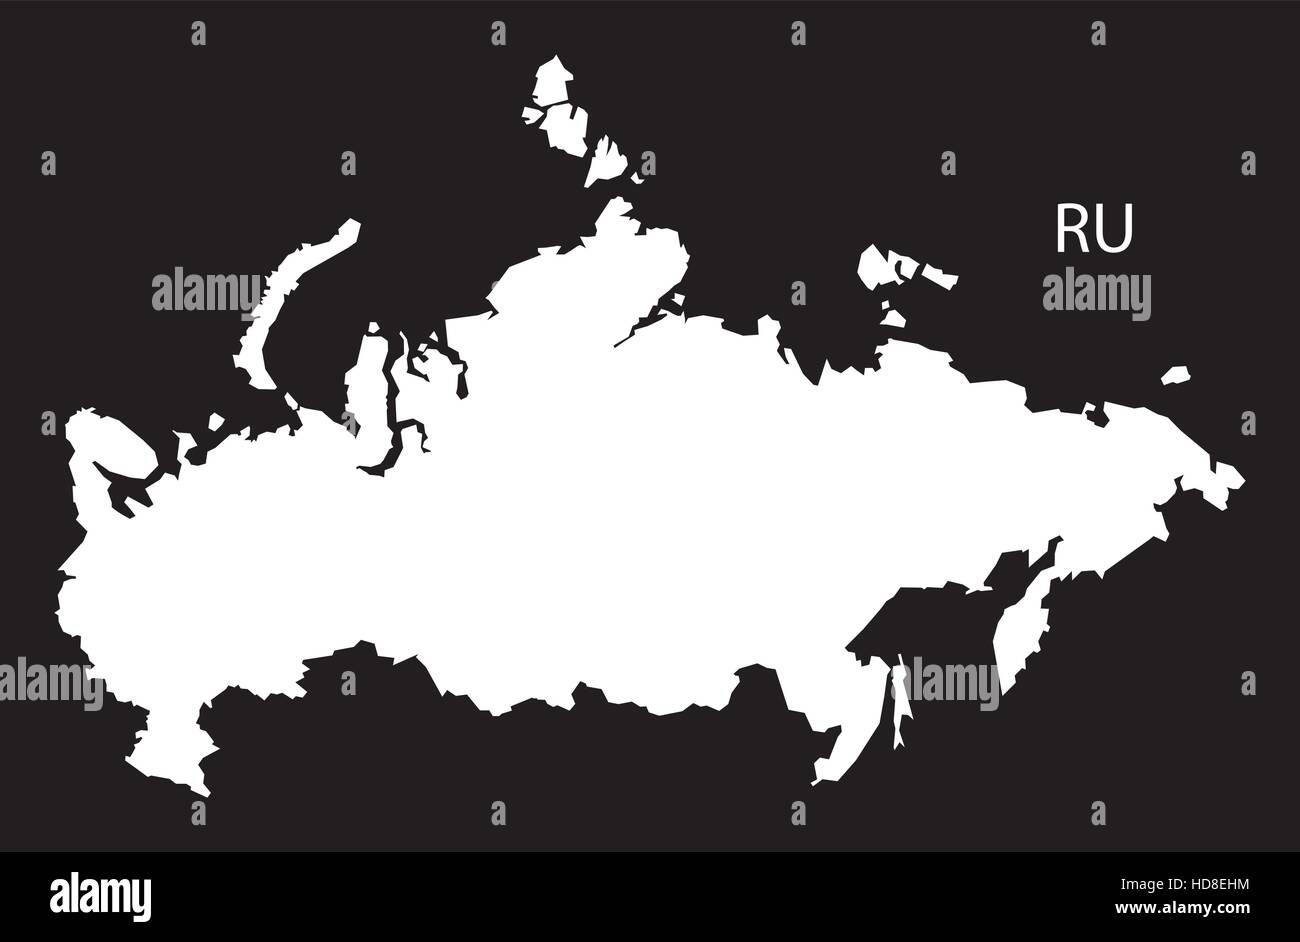 Russia map stock vector images alamy russia map black and white illustration stock vector gumiabroncs Choice Image